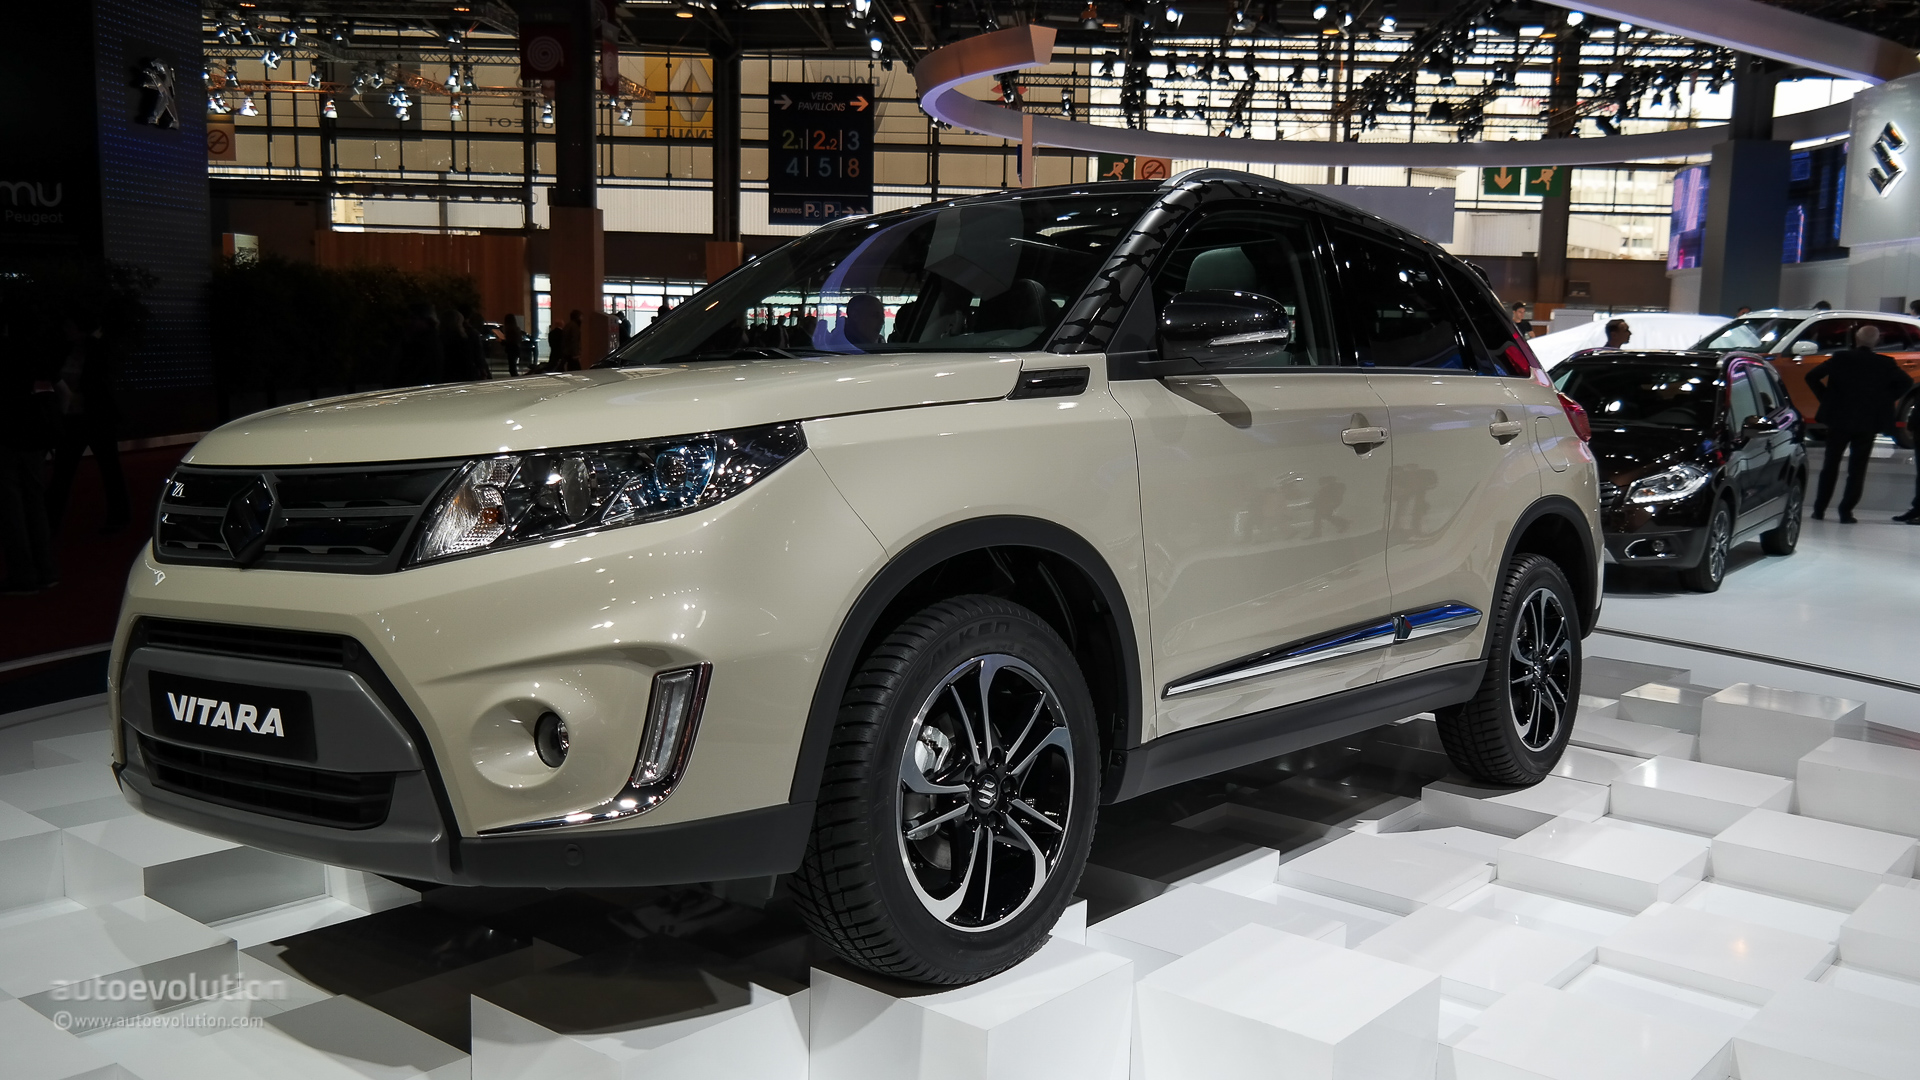 2015 suzuki vitara at paris motor show 2014